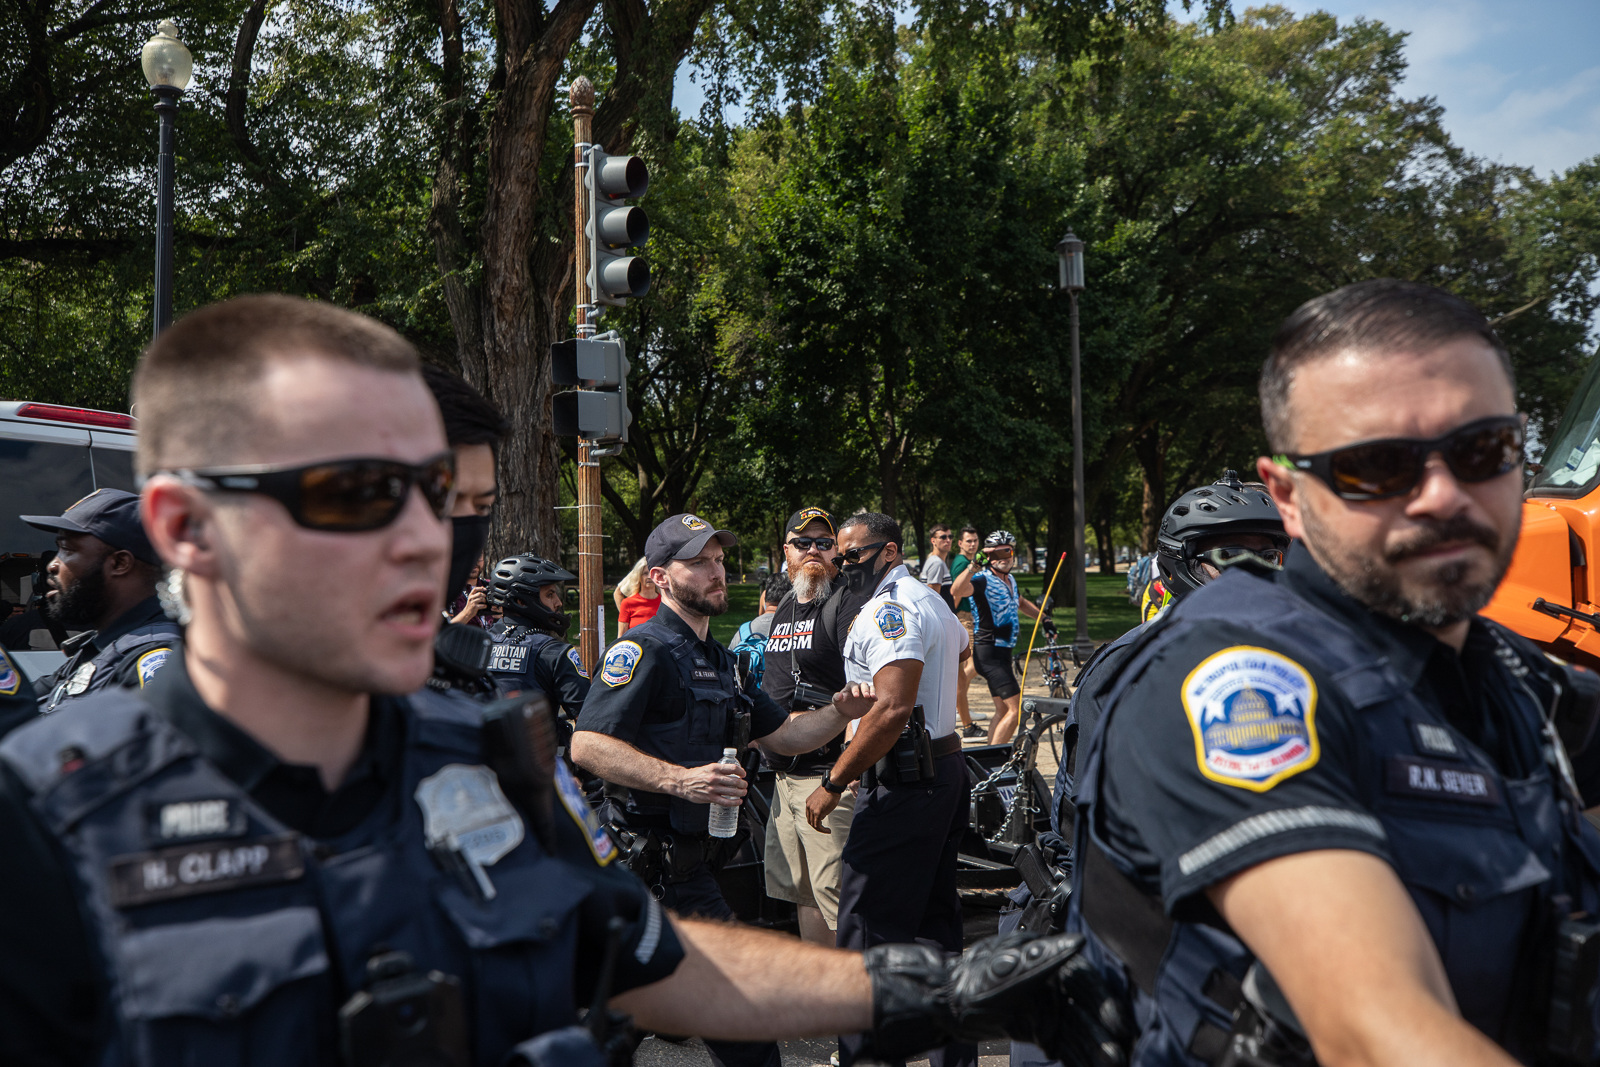 Law enforcement officials escorted a man who got into a shouting match with protesters at the